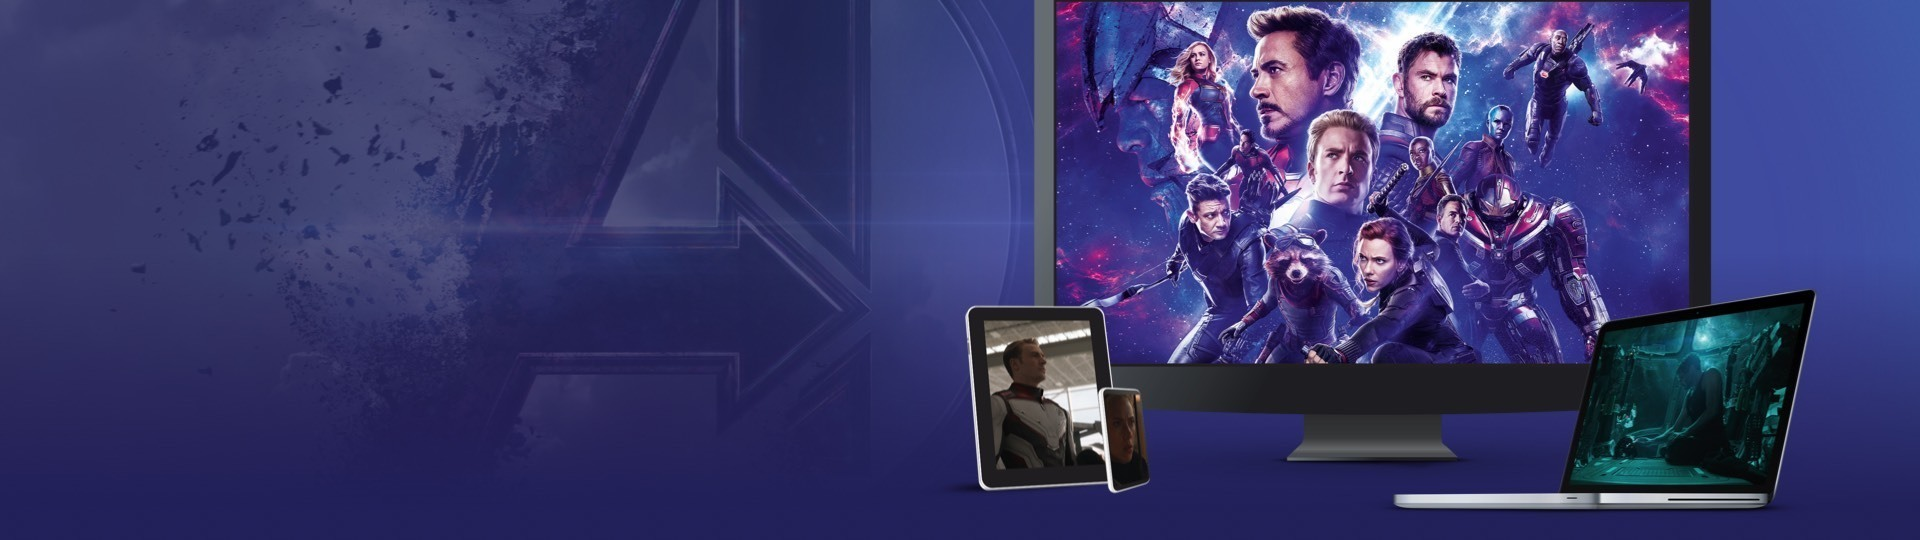 Avengers: Endgame, disponible en achat digital